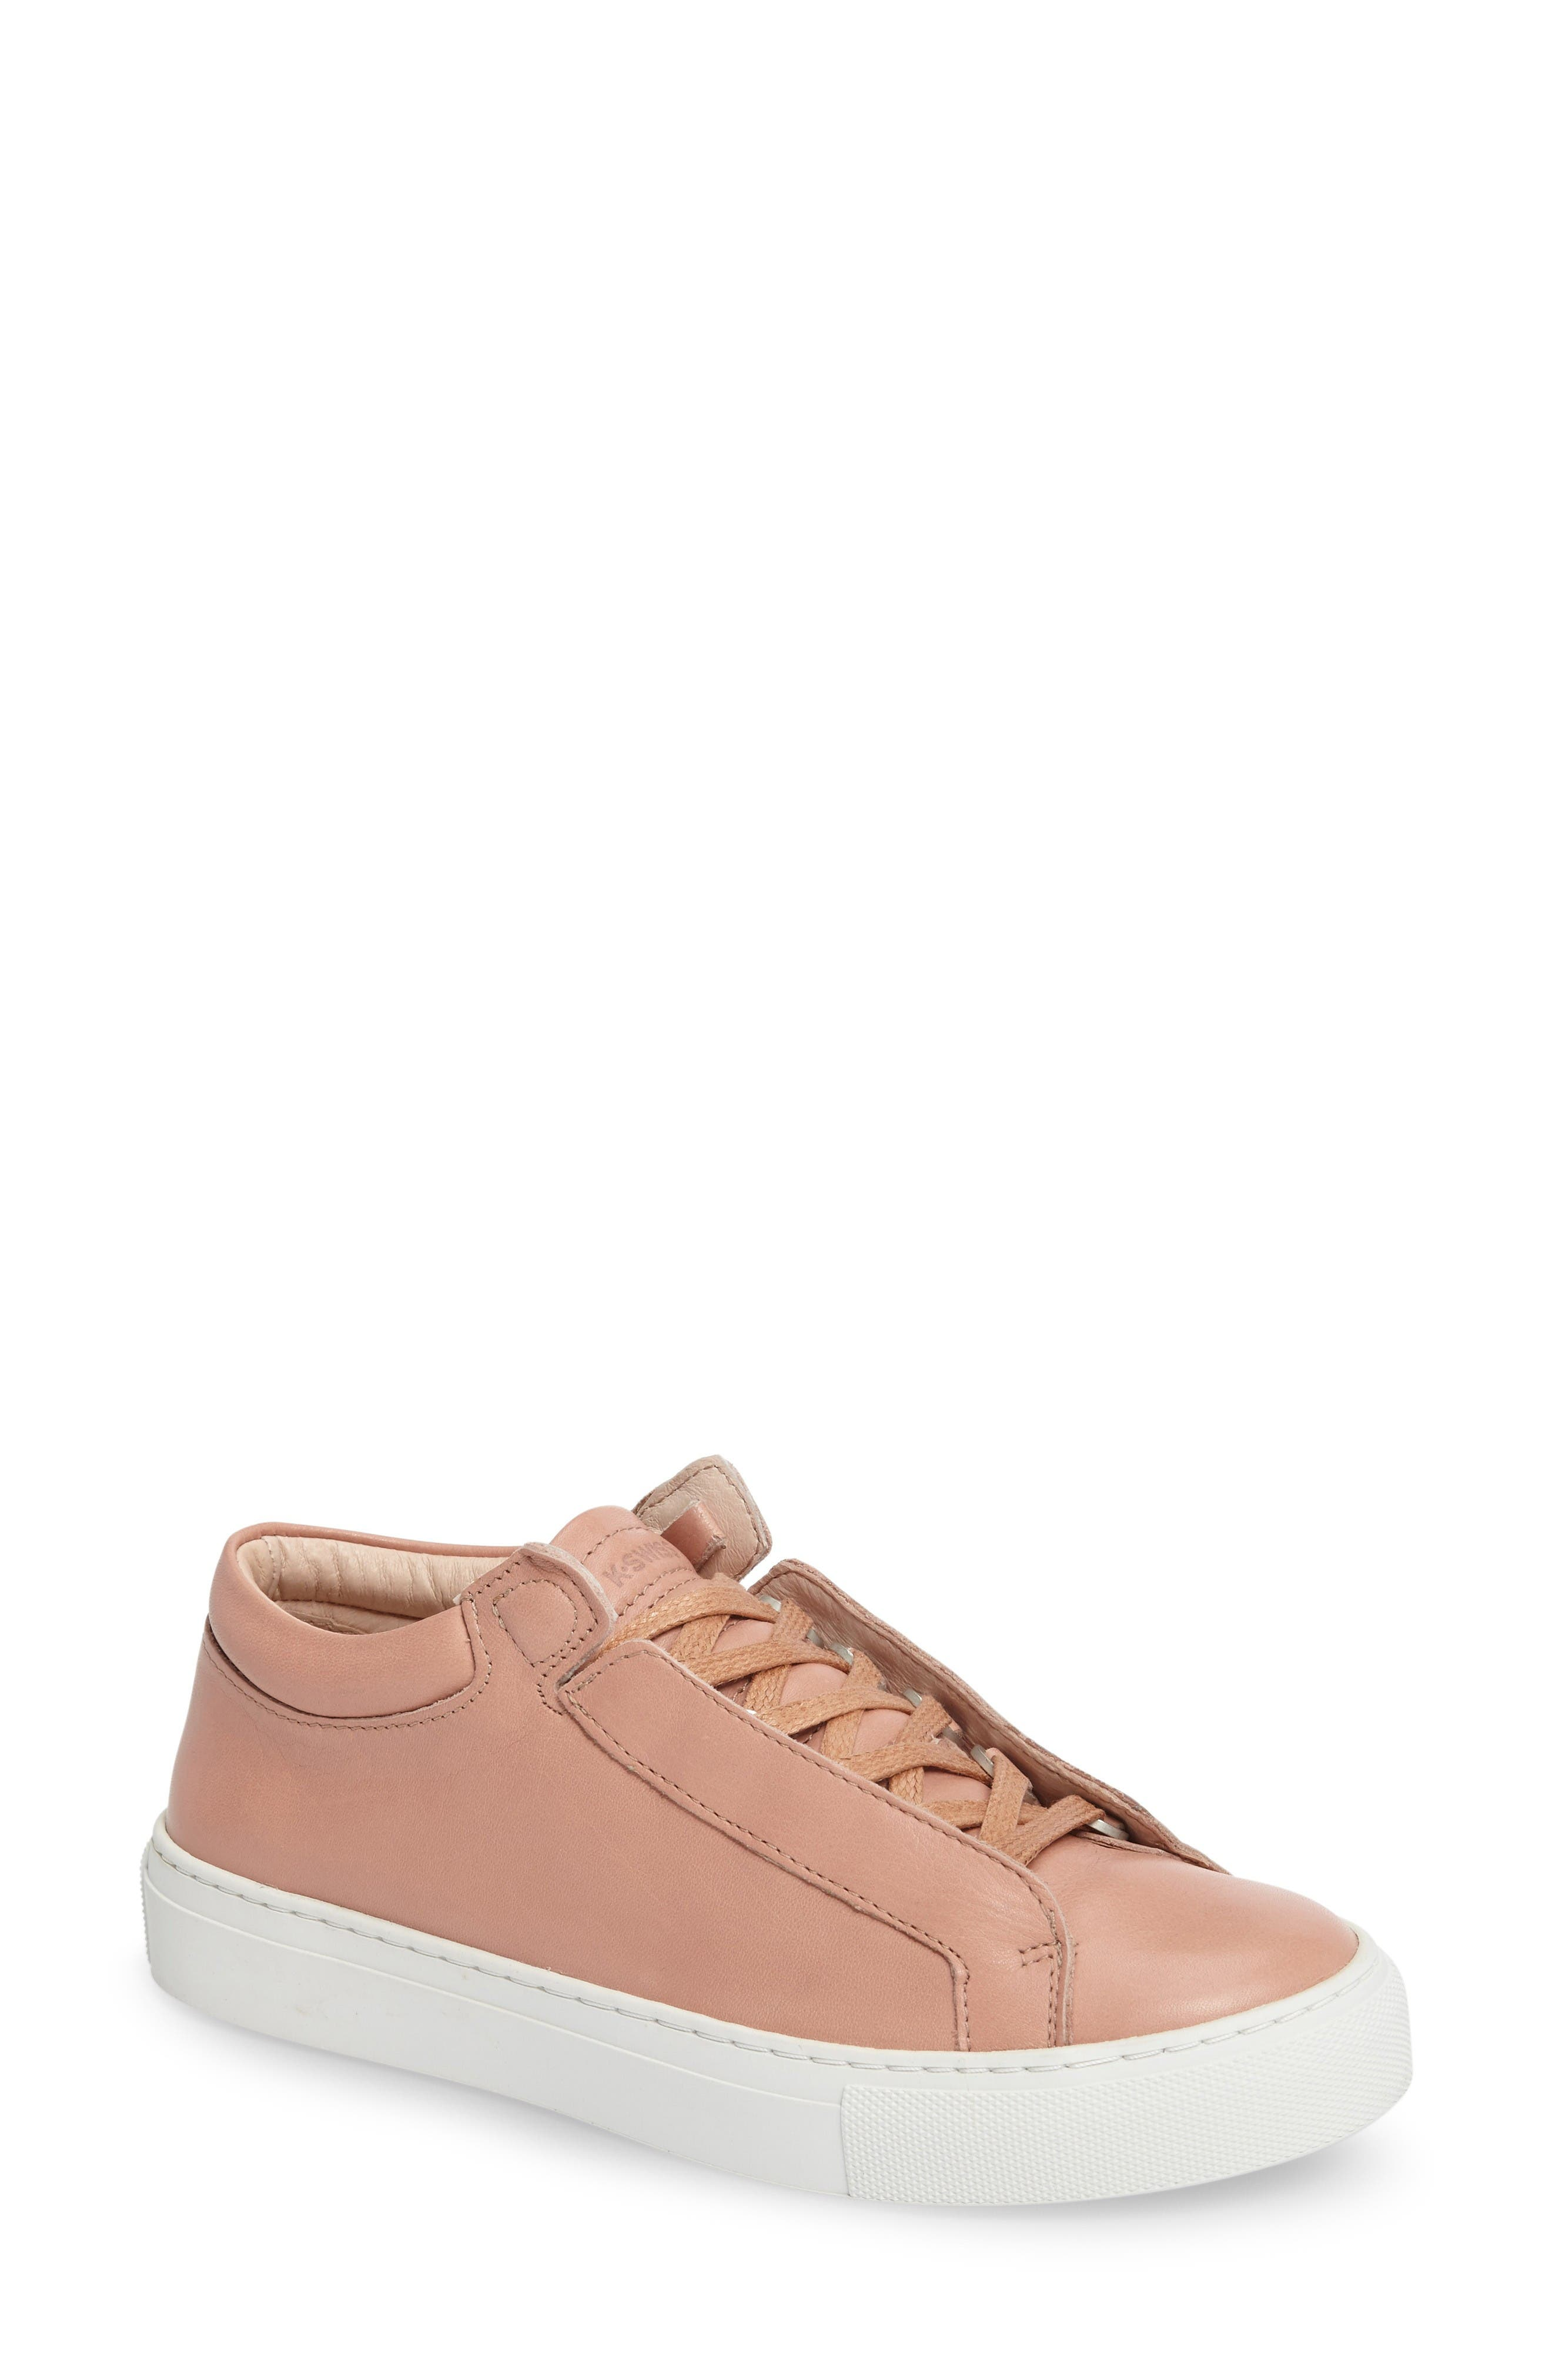 Alternate Image 1 Selected - K-Swiss Novo Demi Sneaker (Women)